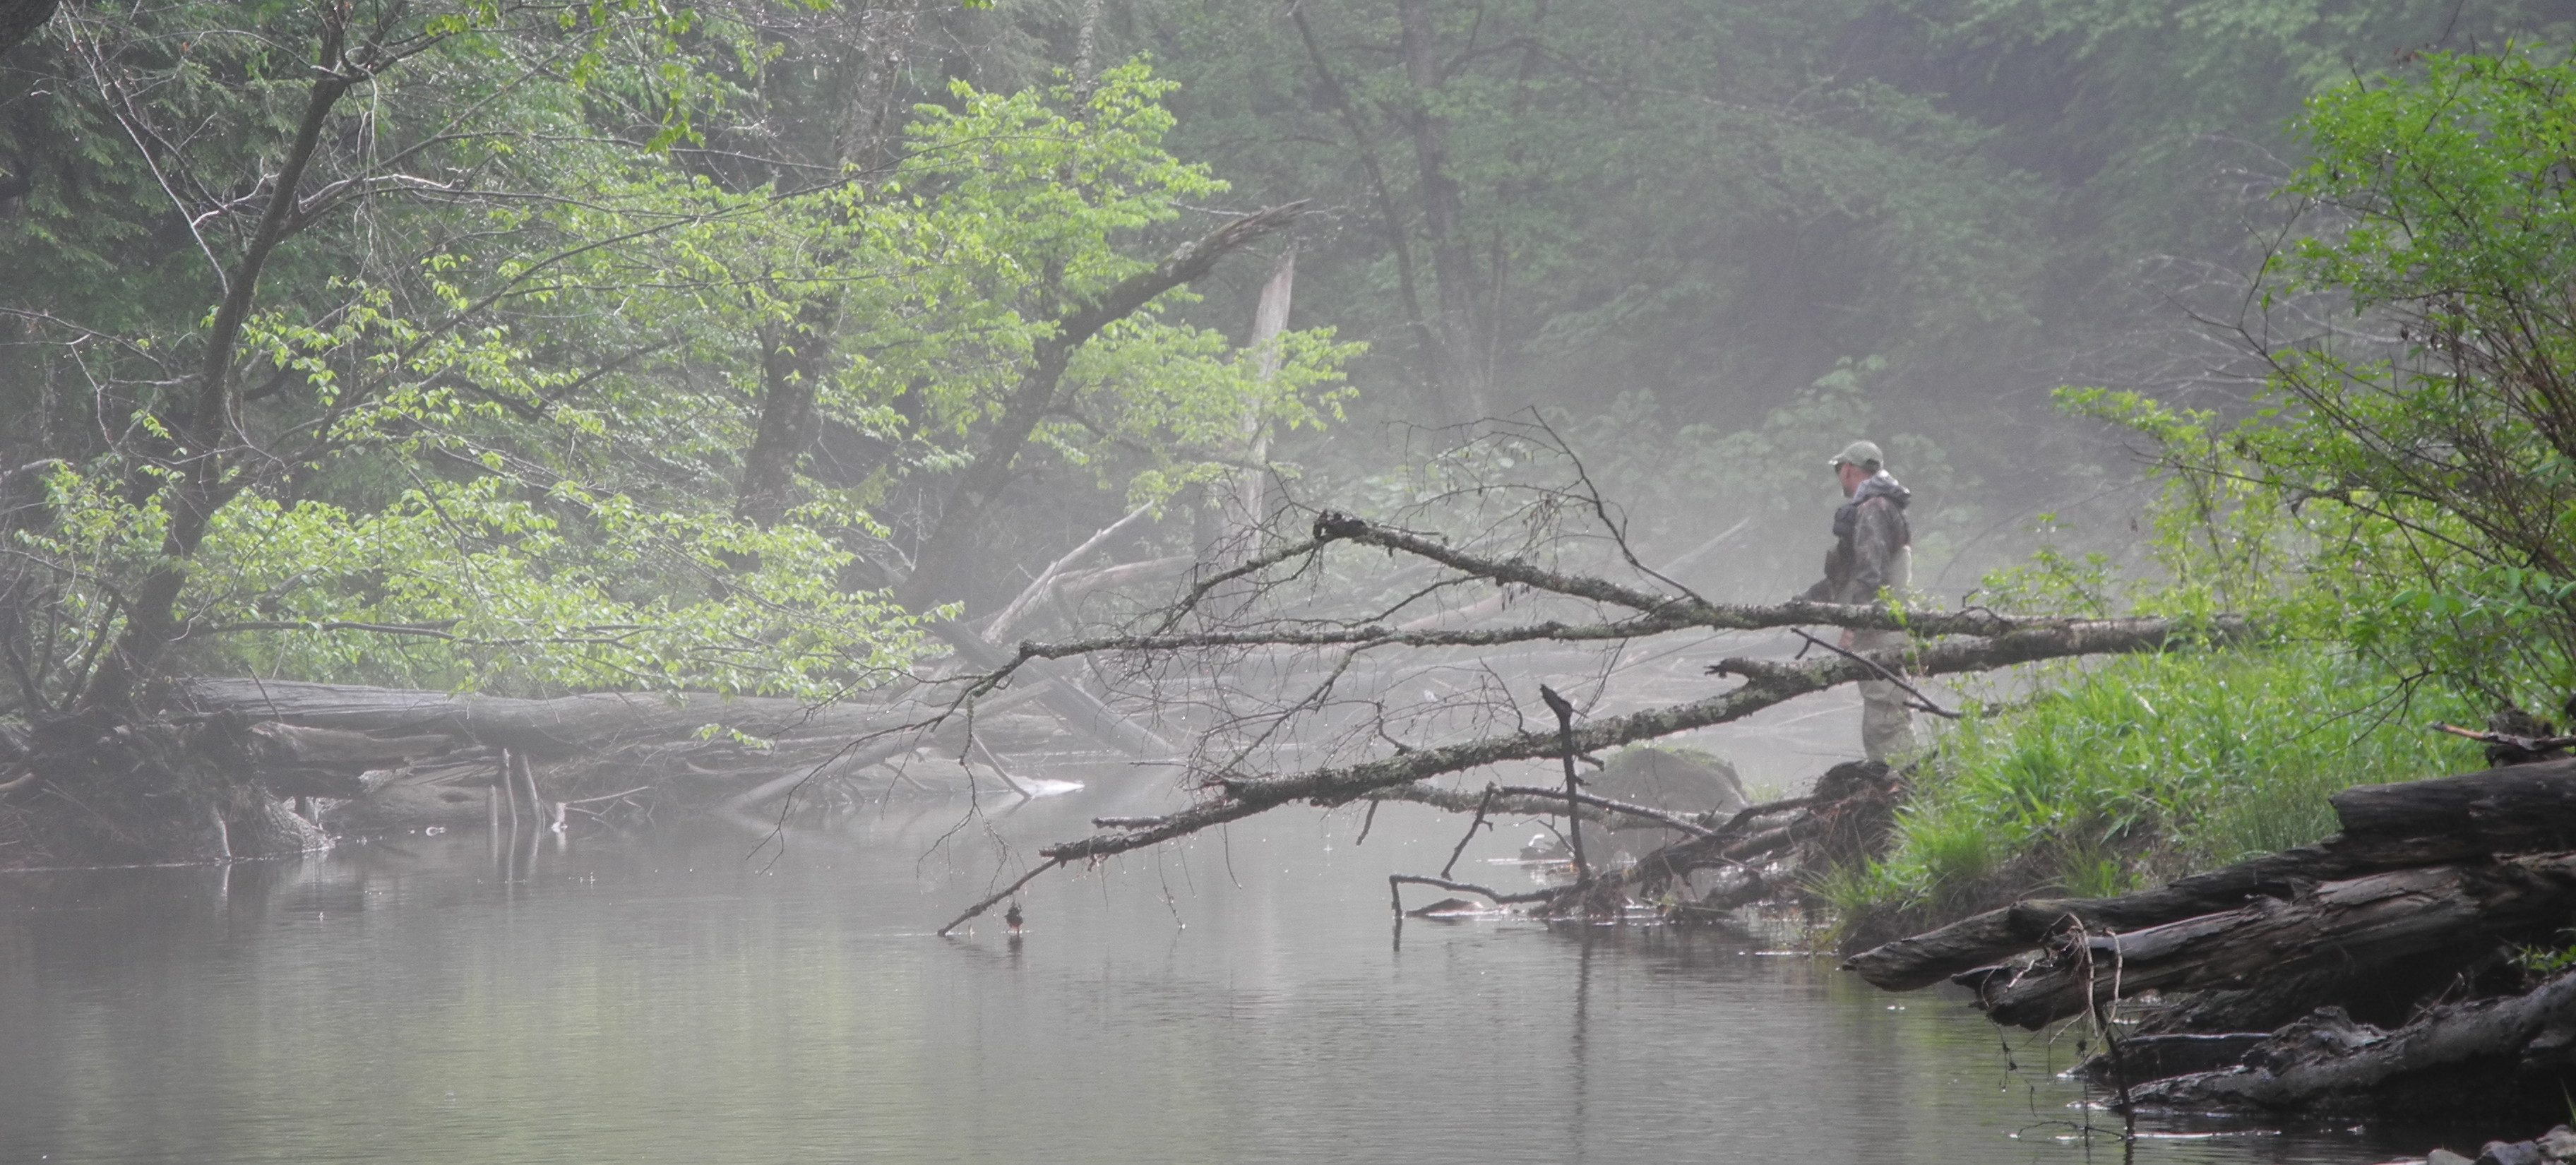 Man fishing creek in the fog